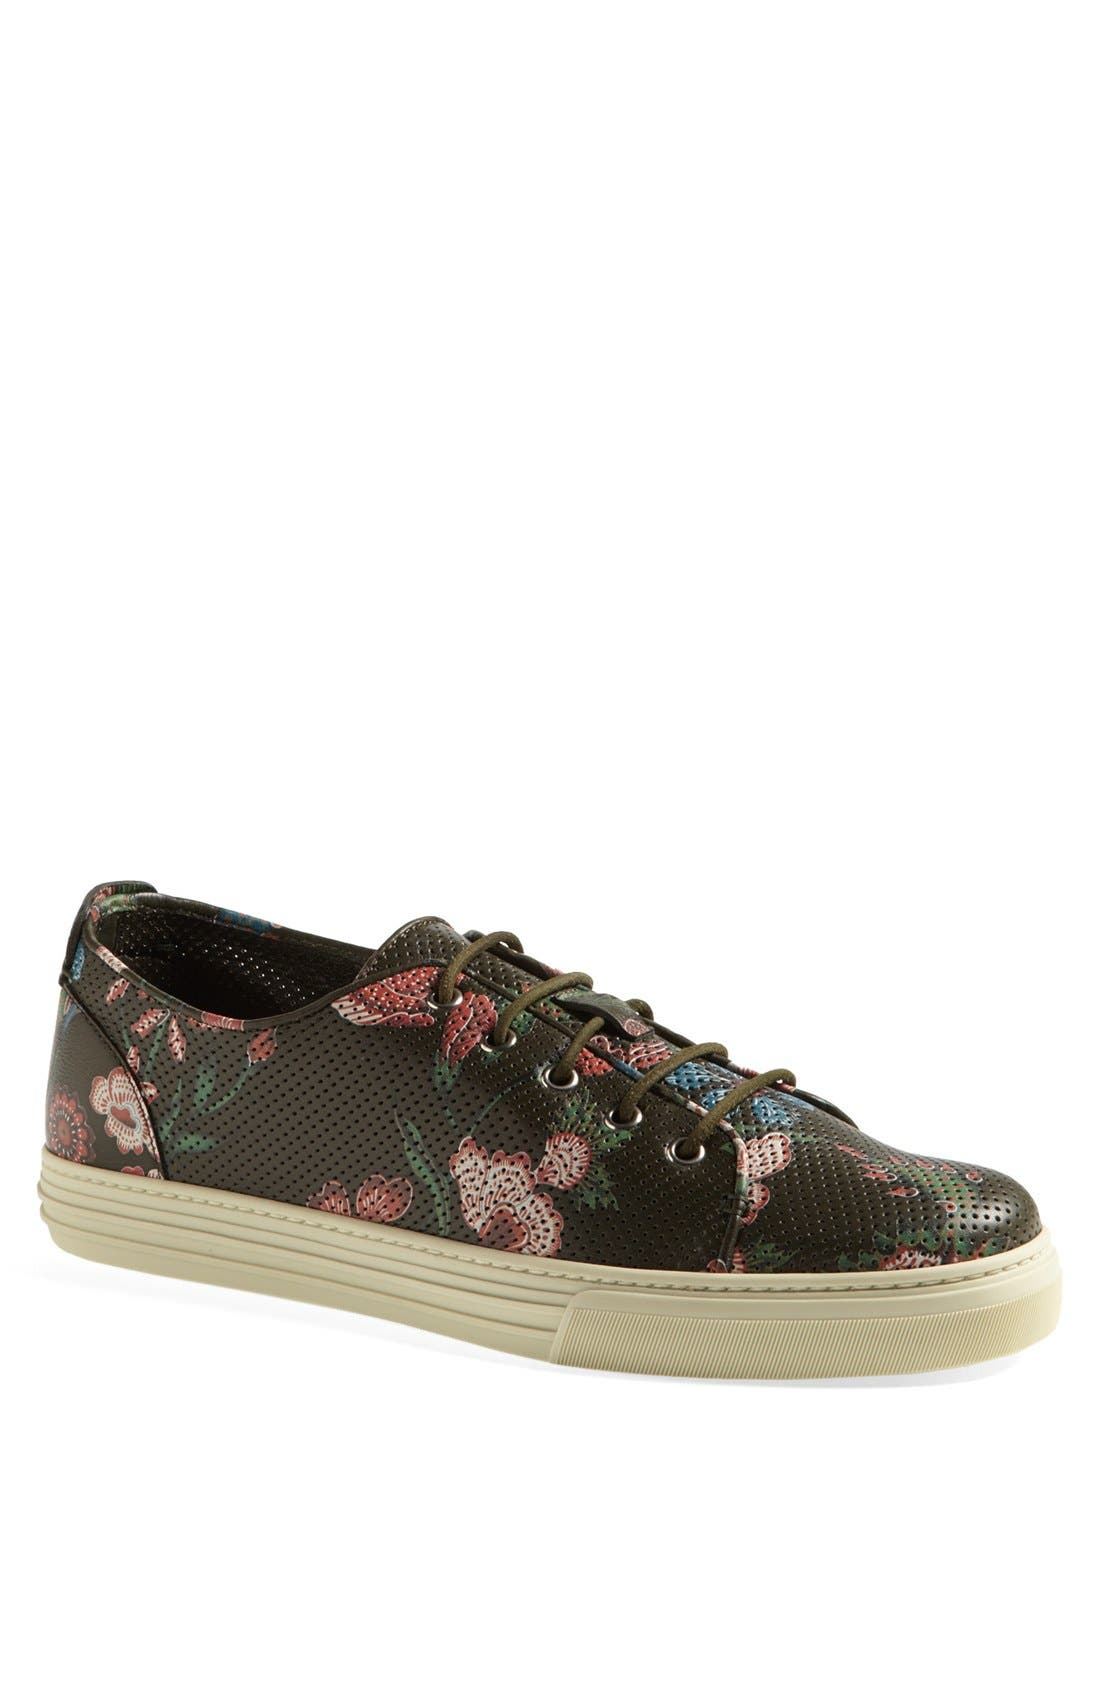 Alternate Image 1 Selected - Gucci 'Jimy' Print Low Sneaker